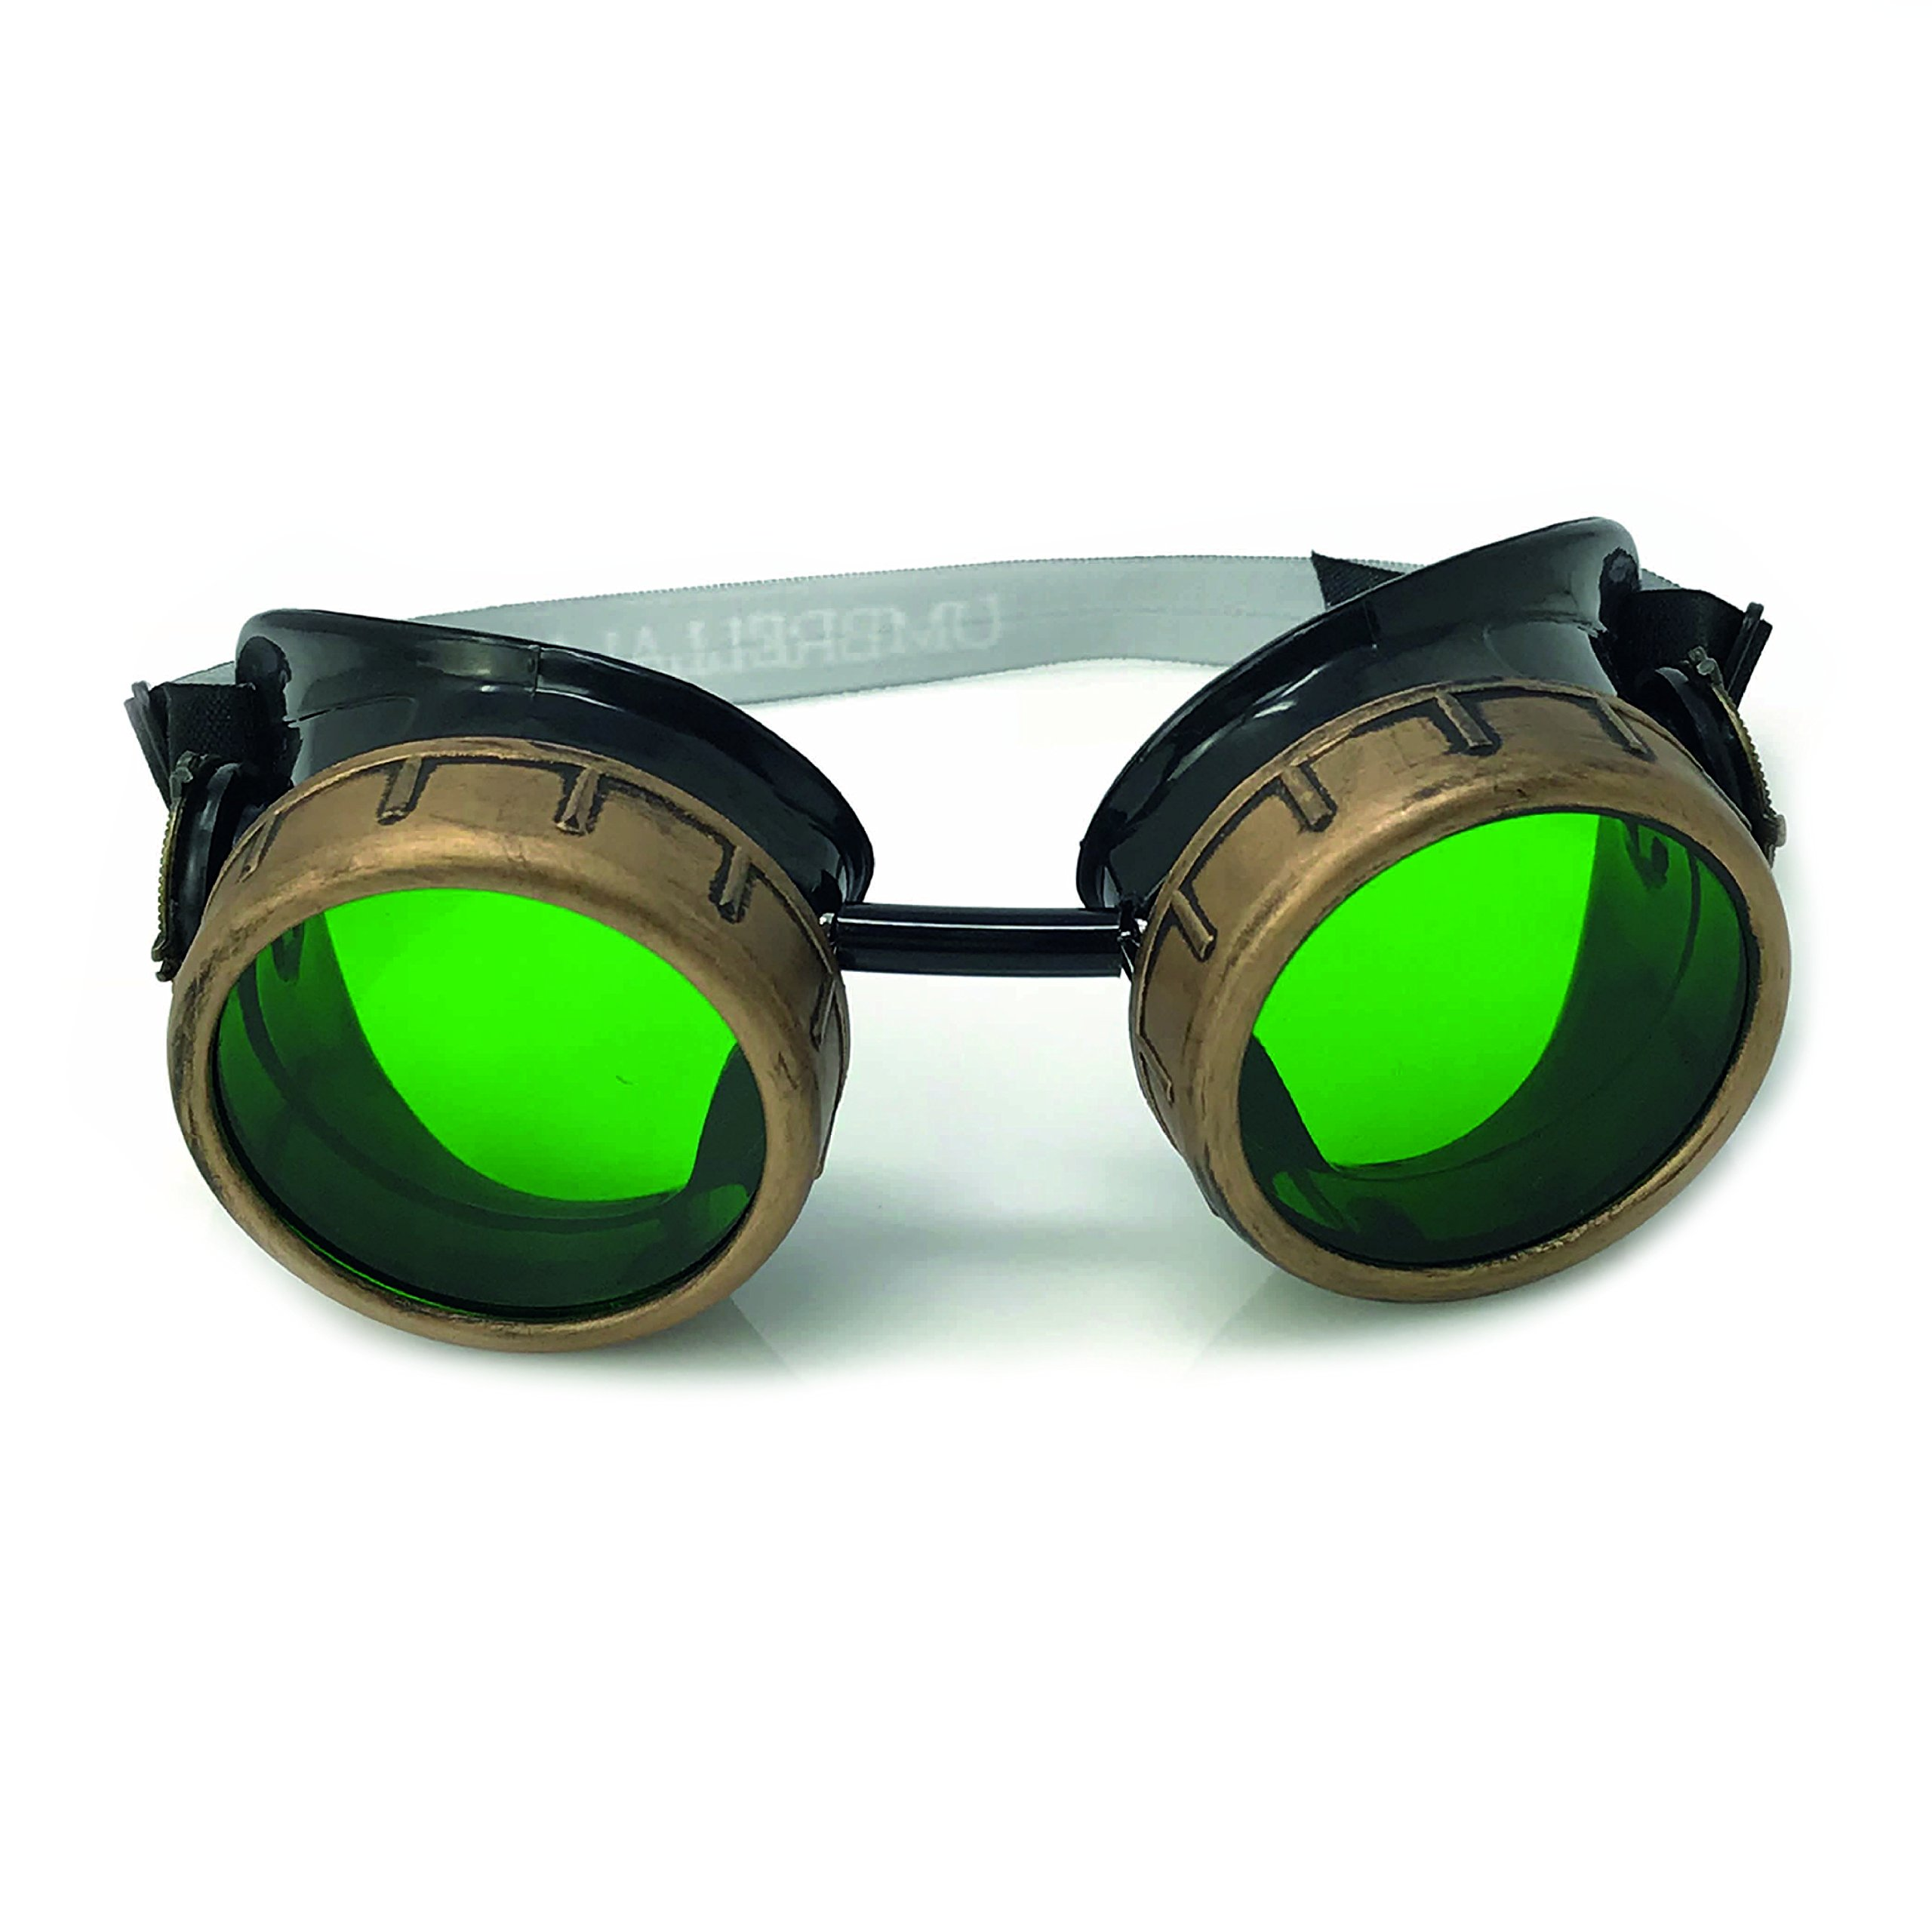 UMBRELLALABORATORY Steampunk Victorian Style Goggles with Compass Design and Colored Lenses